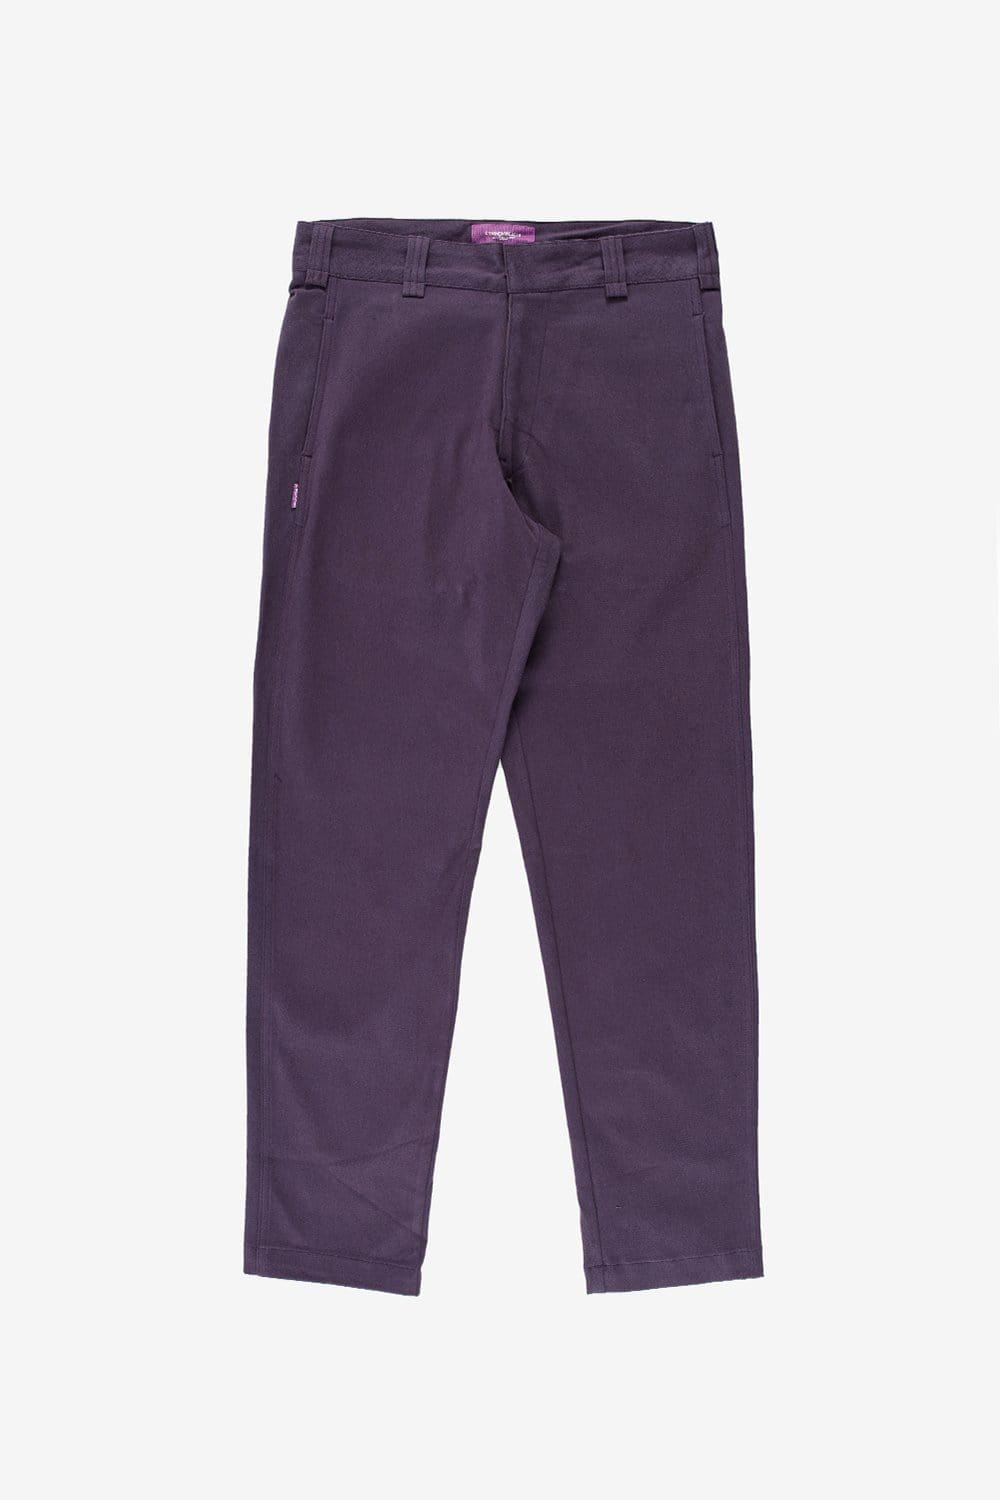 Commonwealth Apparel Angeles Trouser